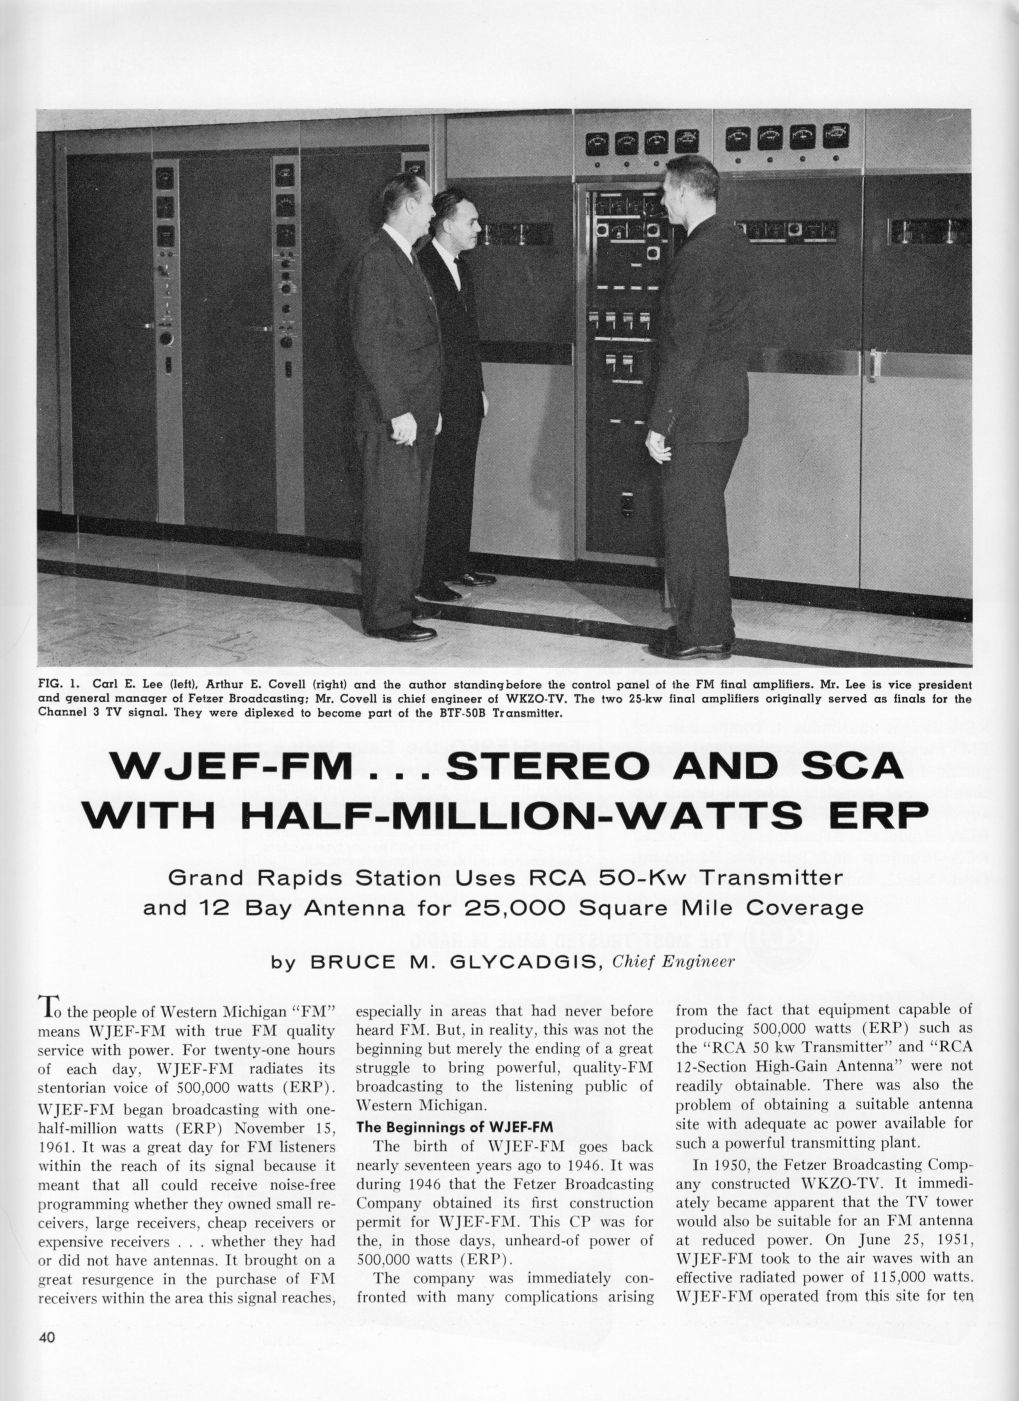 WJEF-FM...Stereo Half-Million-Watts, page 1